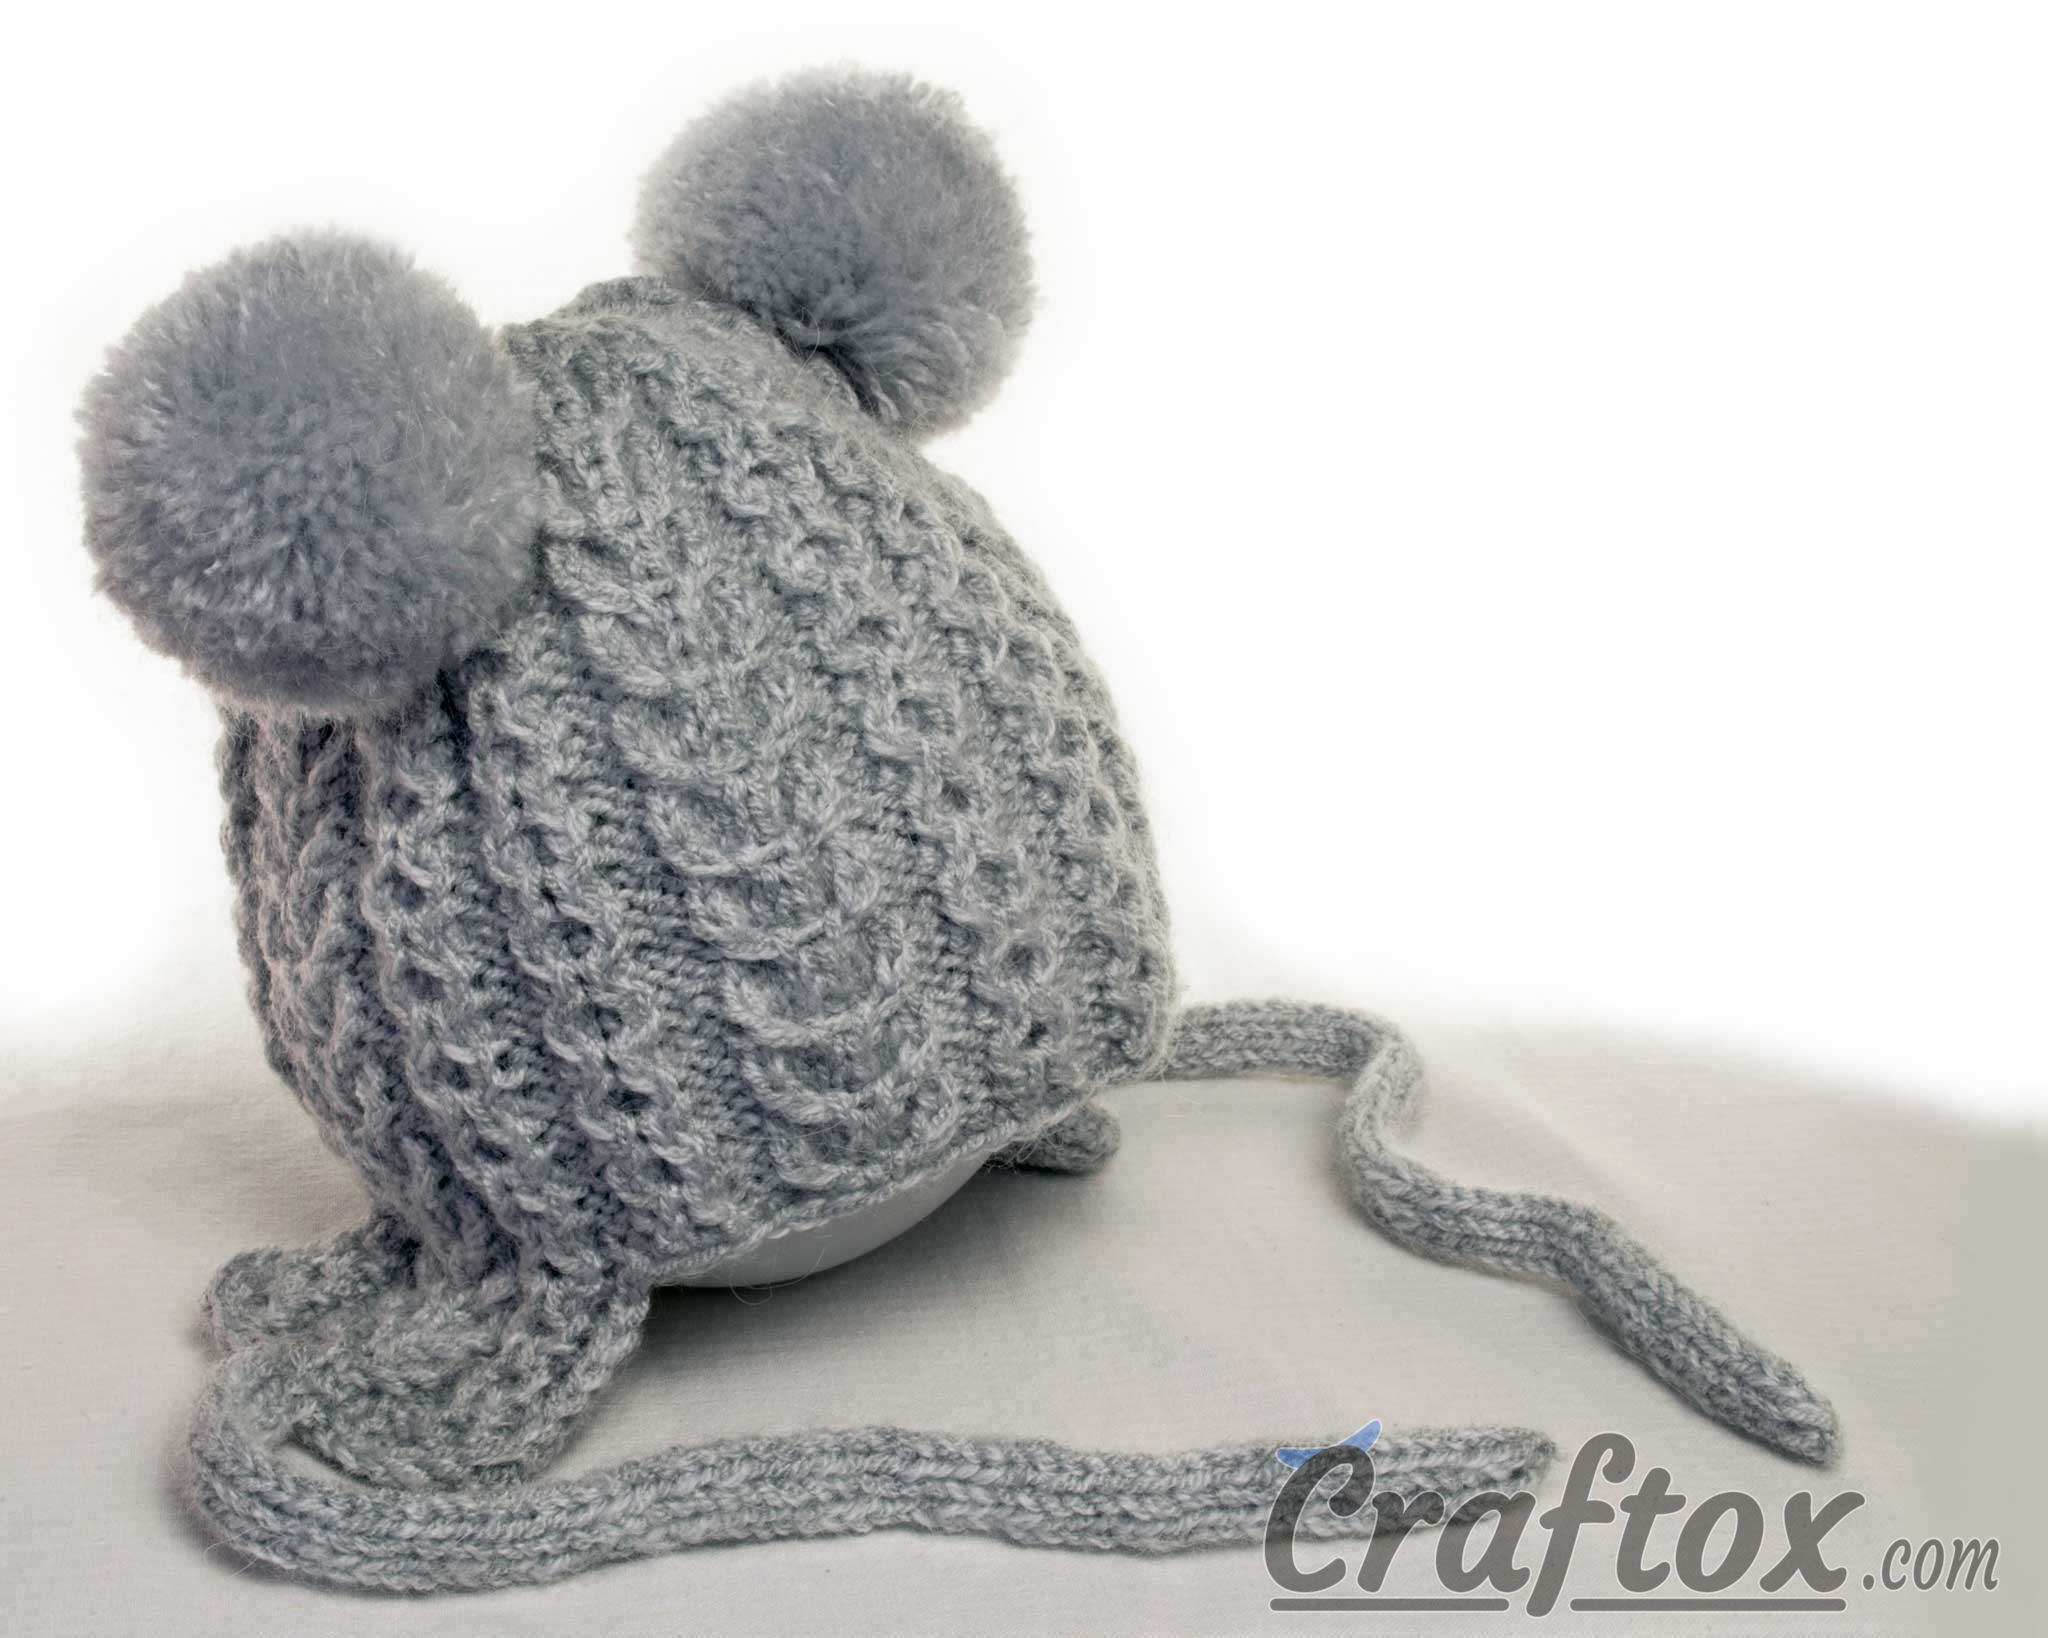 Knitting winter hat with pom poms for kid. Free pattern | Knitting ...